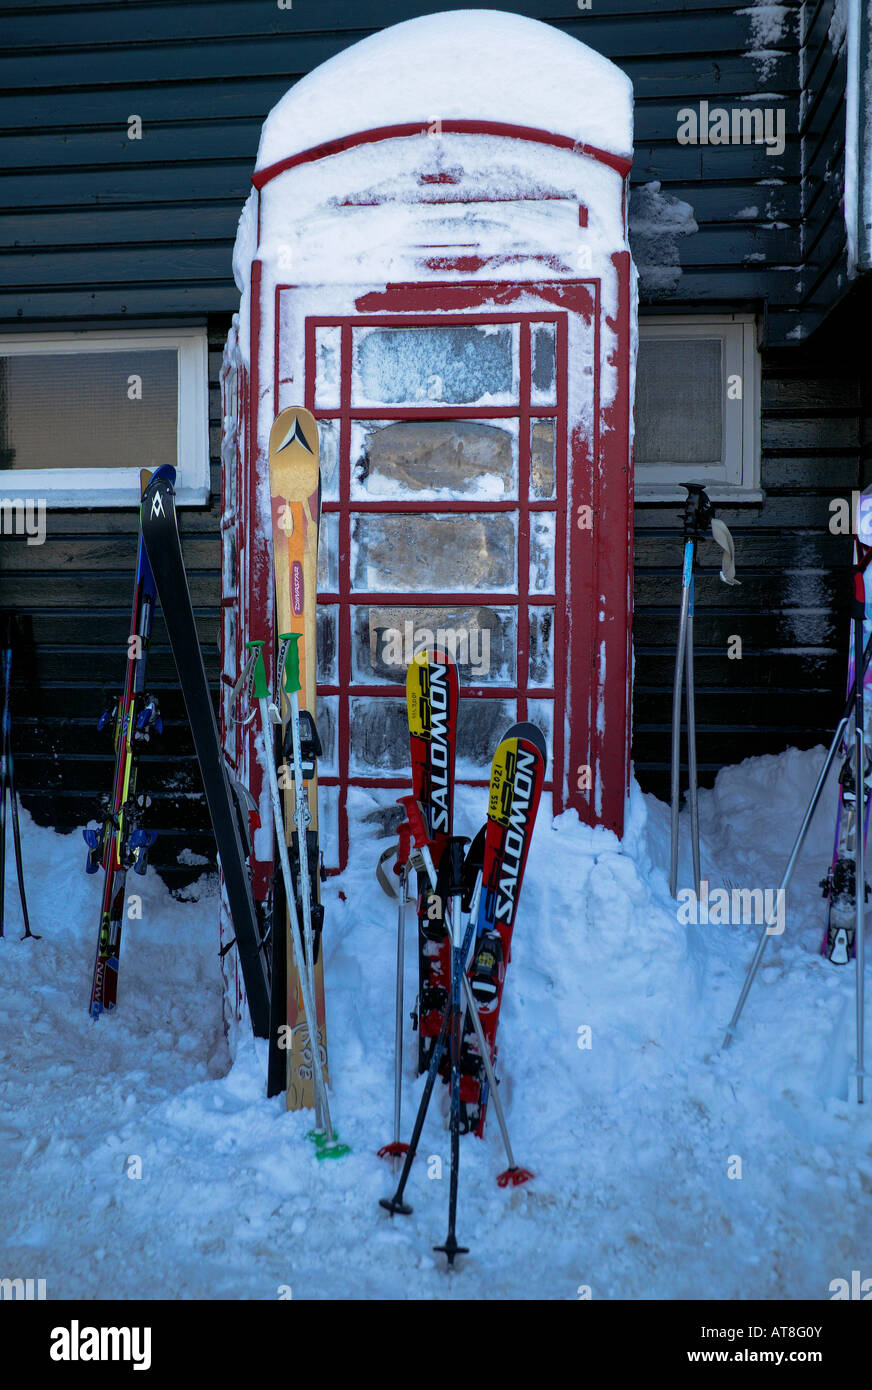 Red Telephone box surrounded by snow and skis, Cairngorms National Park Glenshee ski centre Aberdeenshire and Perthshire - Stock Image